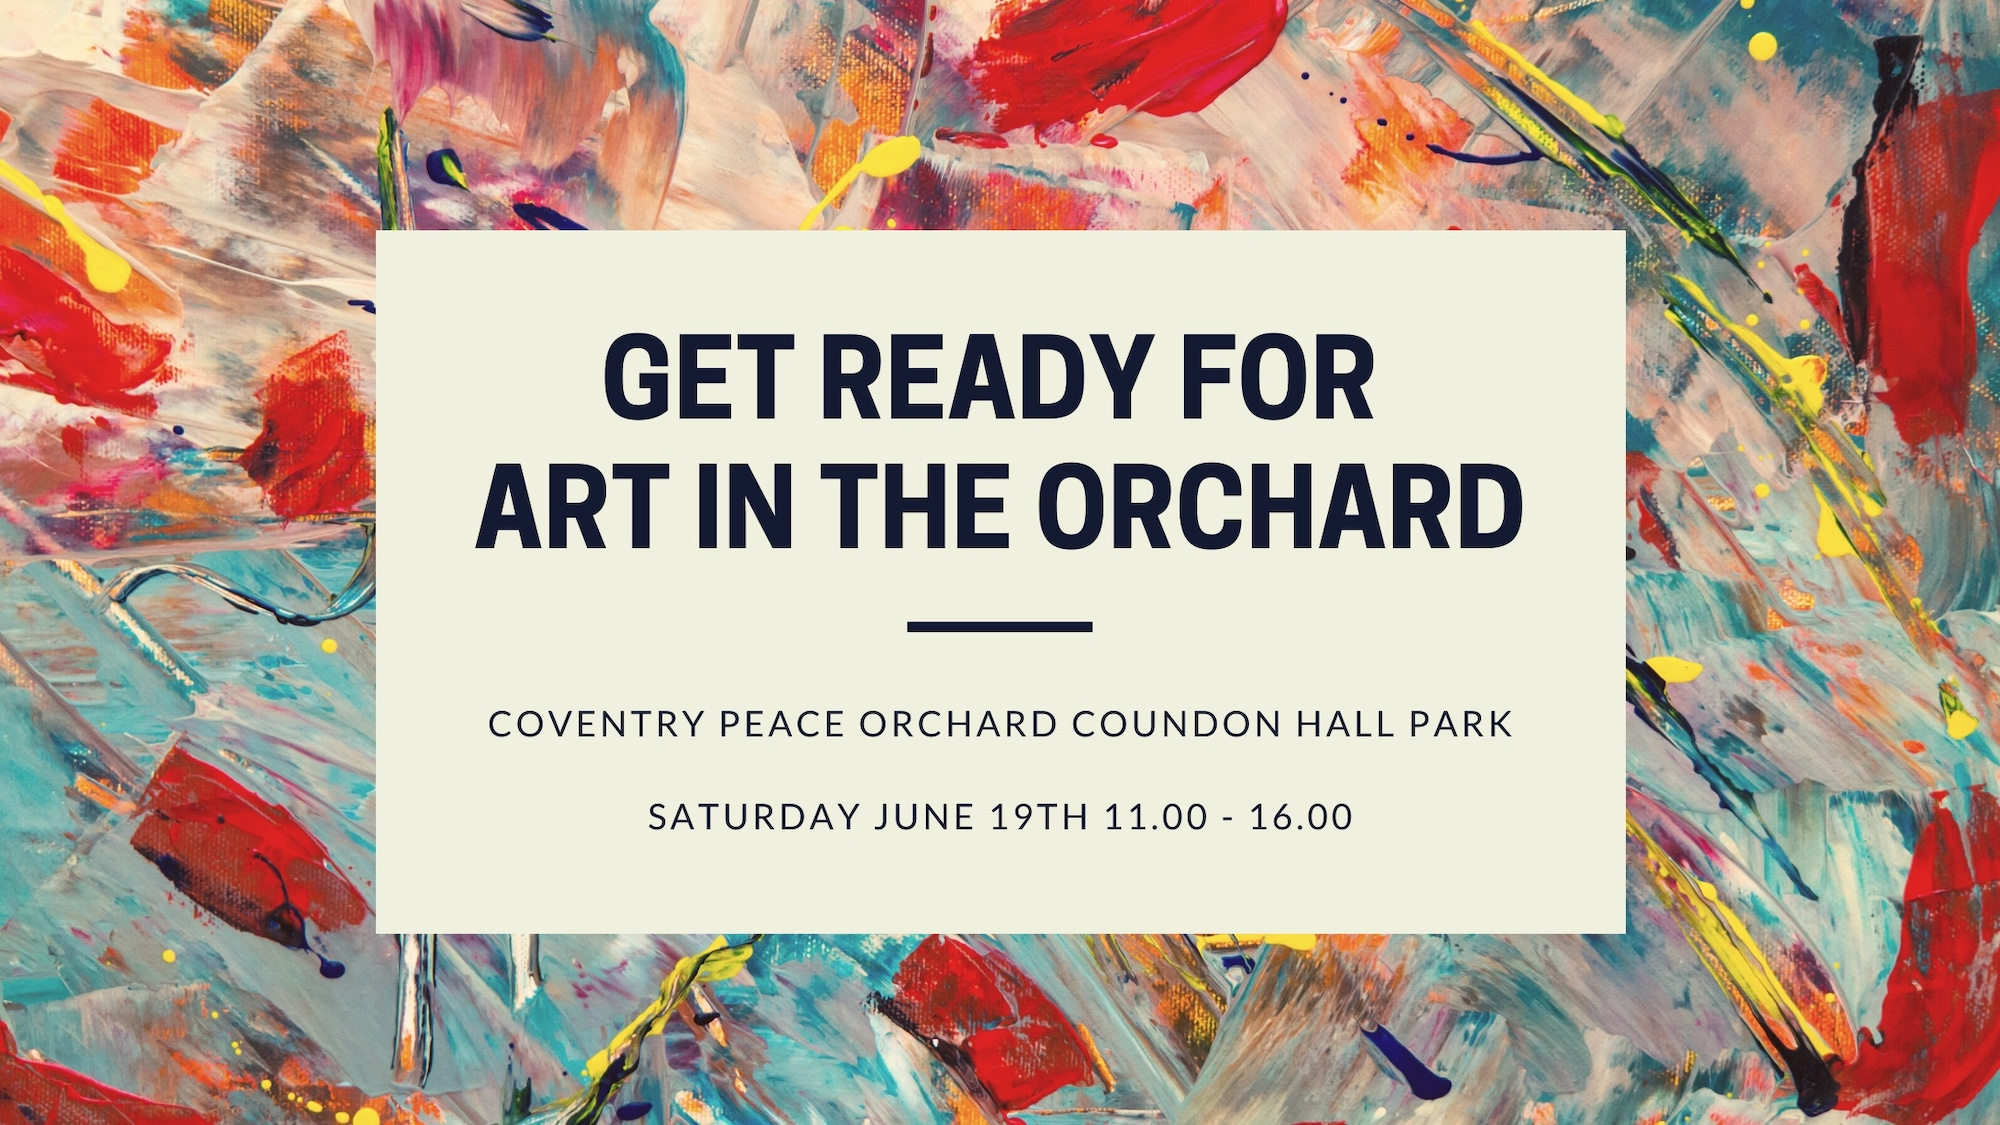 Art in the Orchard 19th June 11.00 - 16.00